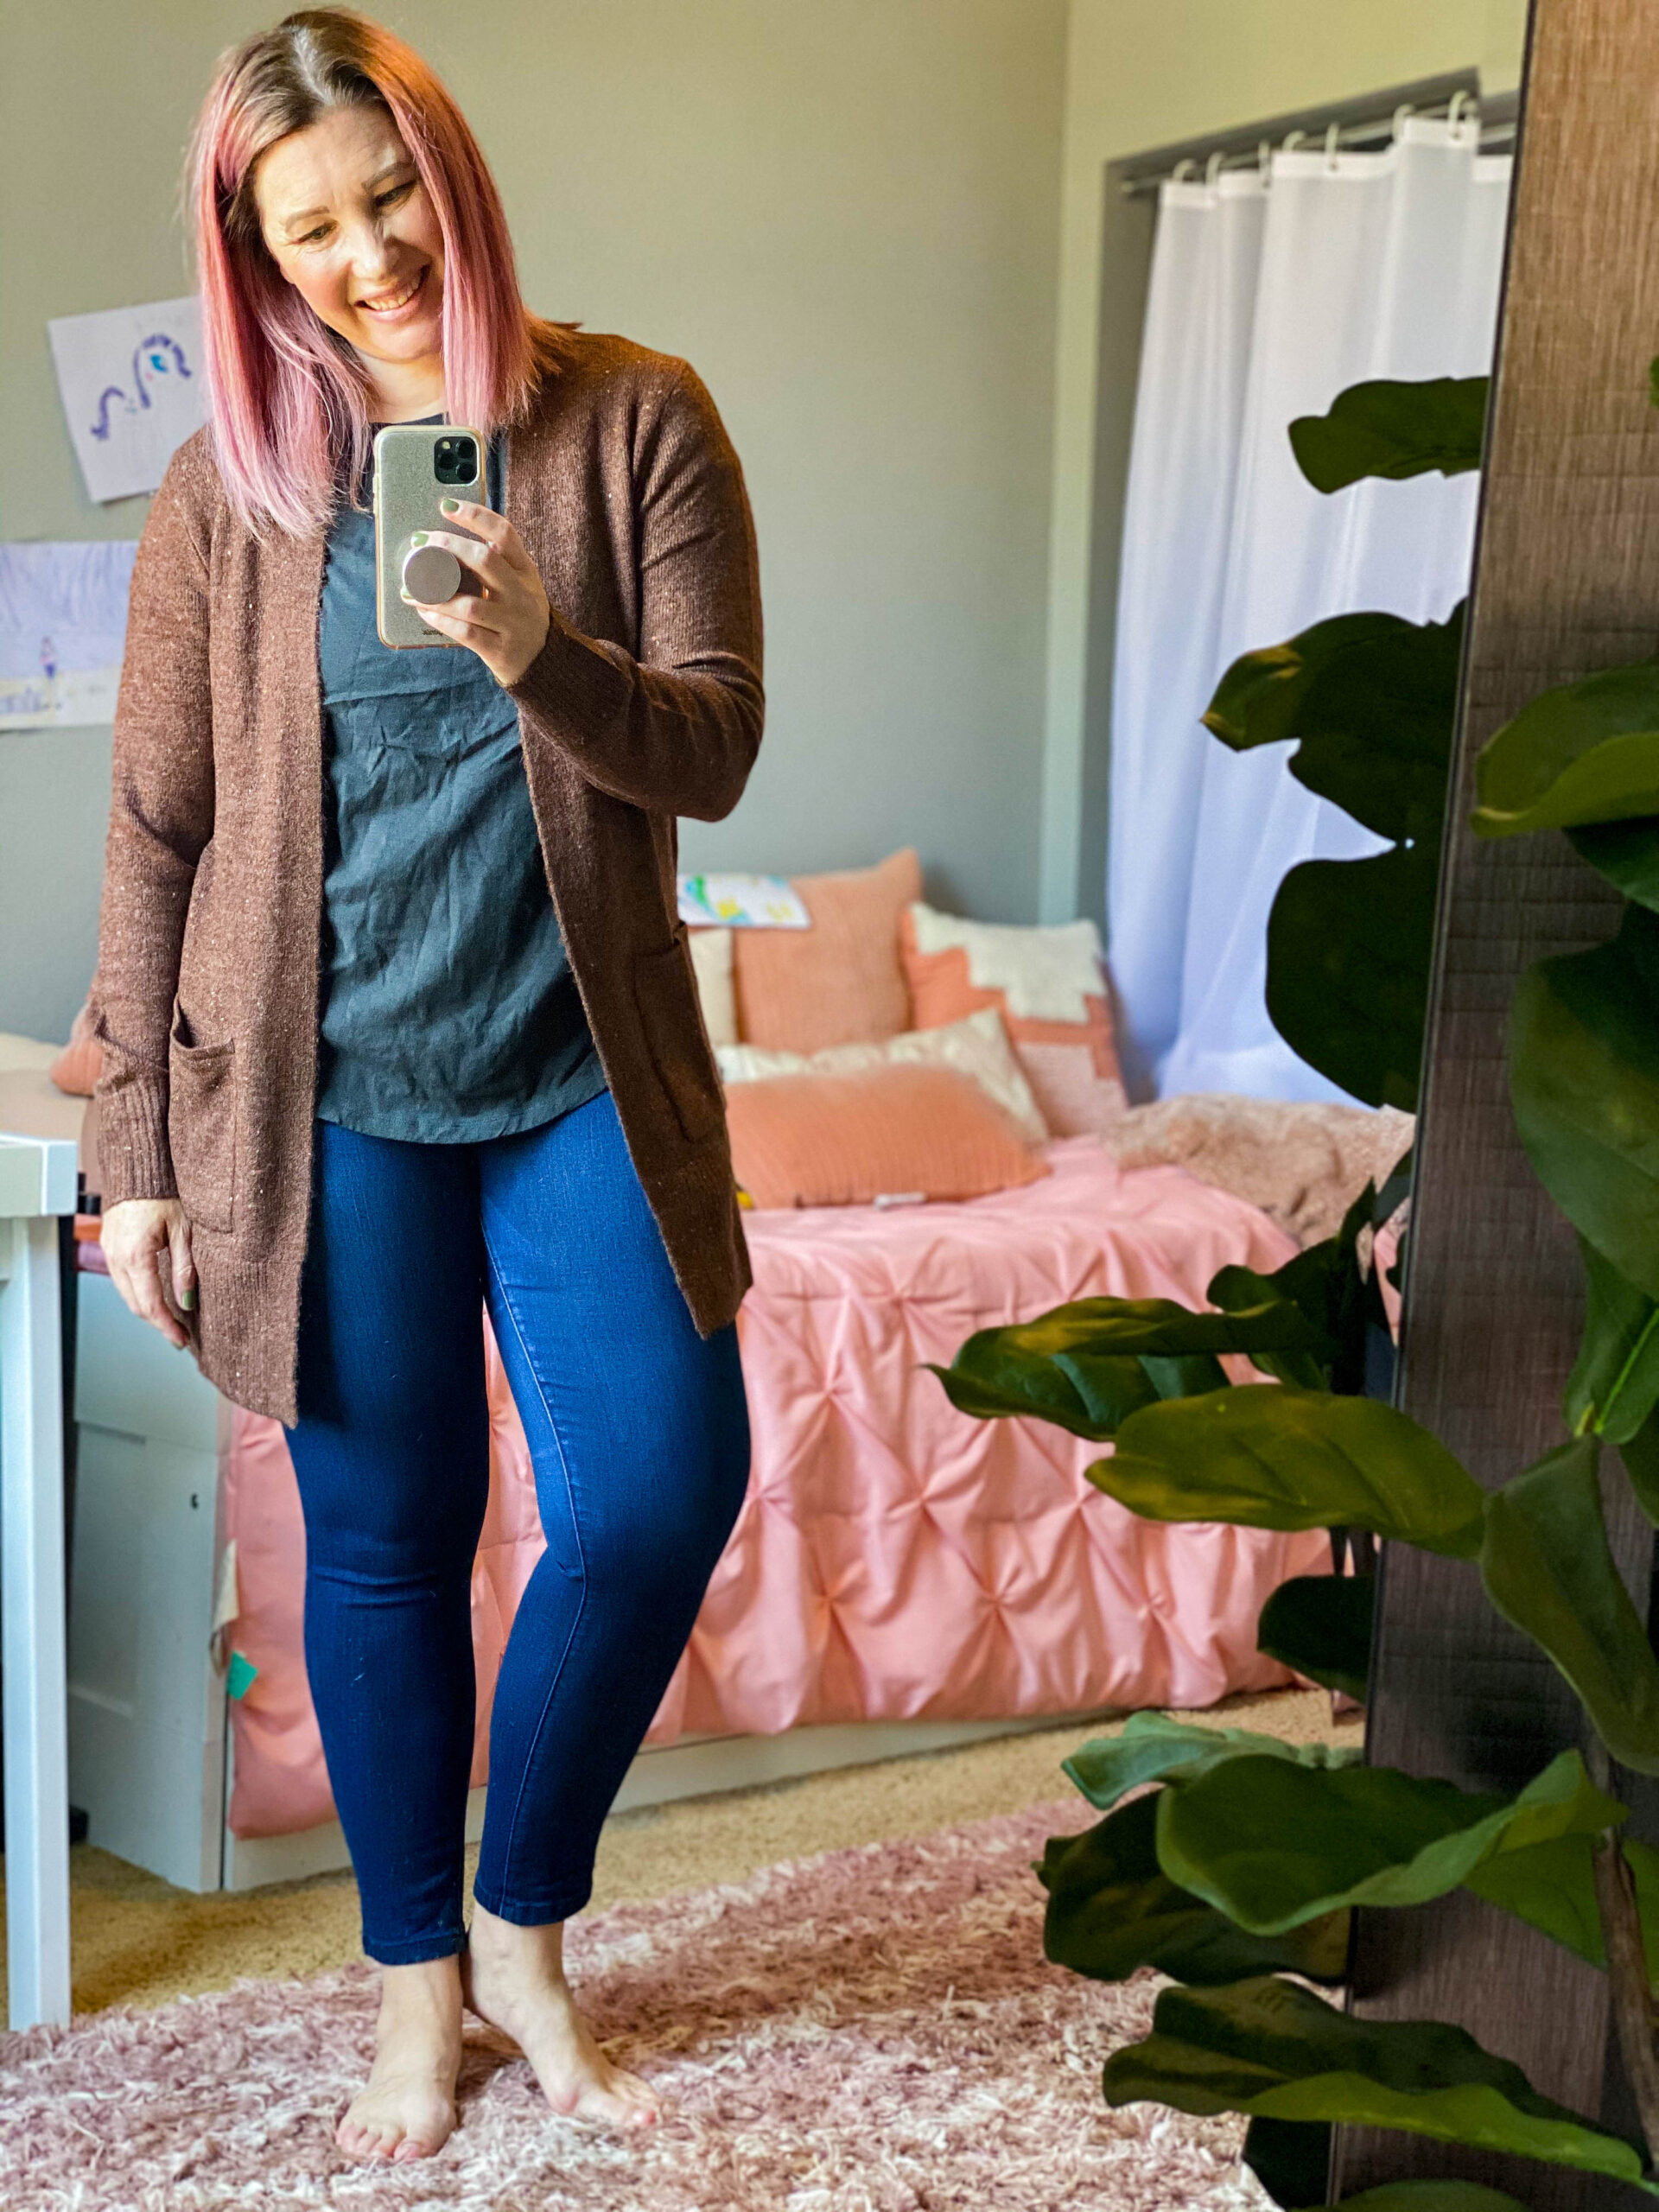 Looking for casual fall outfit pieces that won't break the bank? Old Navy has some GREAT options for killer prices!